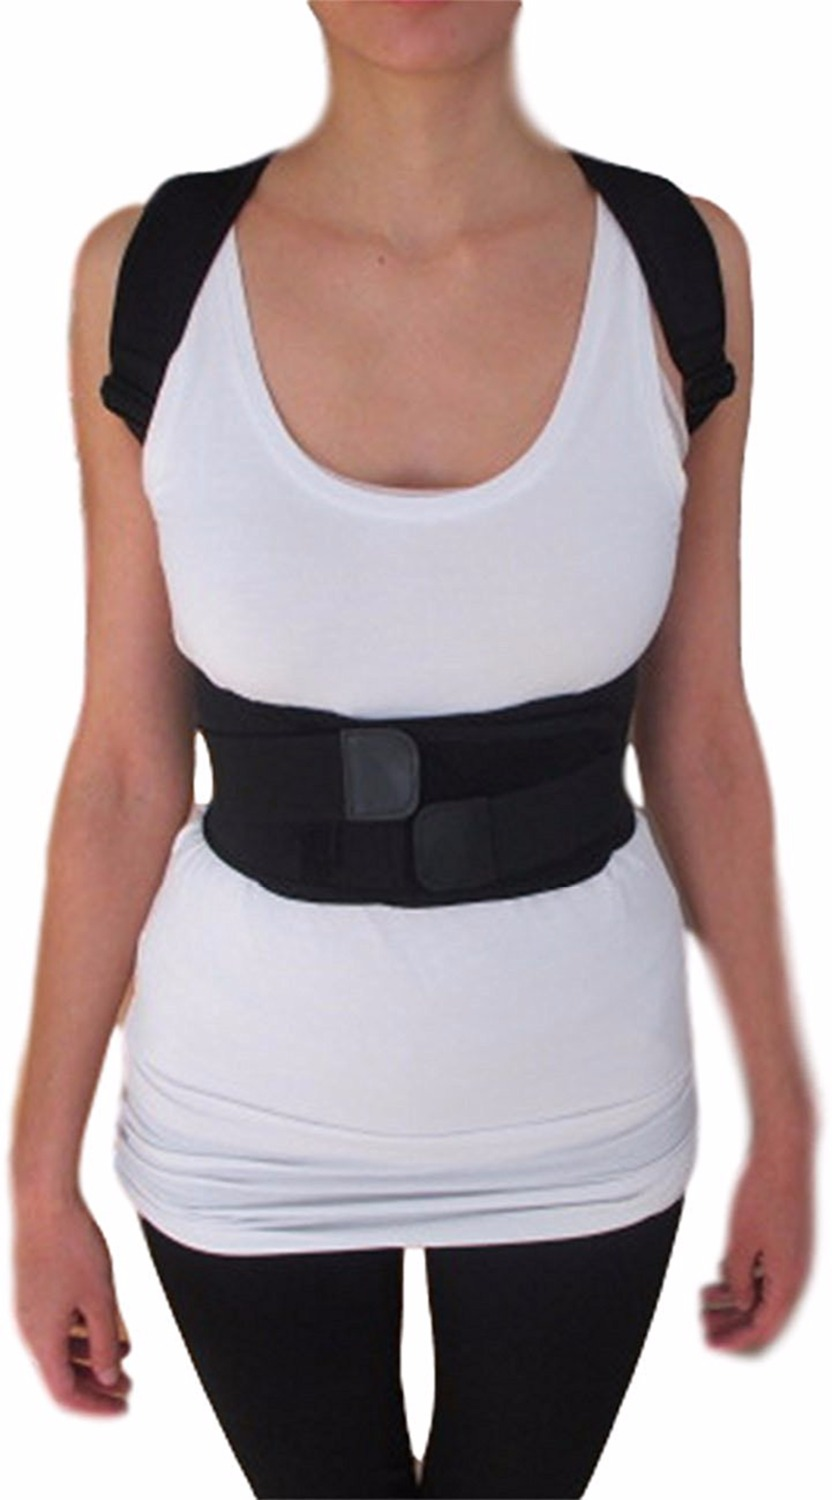 1d24bc0242 Back Support Posture Correction Men Women Magnetic Posture Corset Back  Brace Orthopedic Vest for Back Braces -in Braces   Supports from Beauty    Health on ...